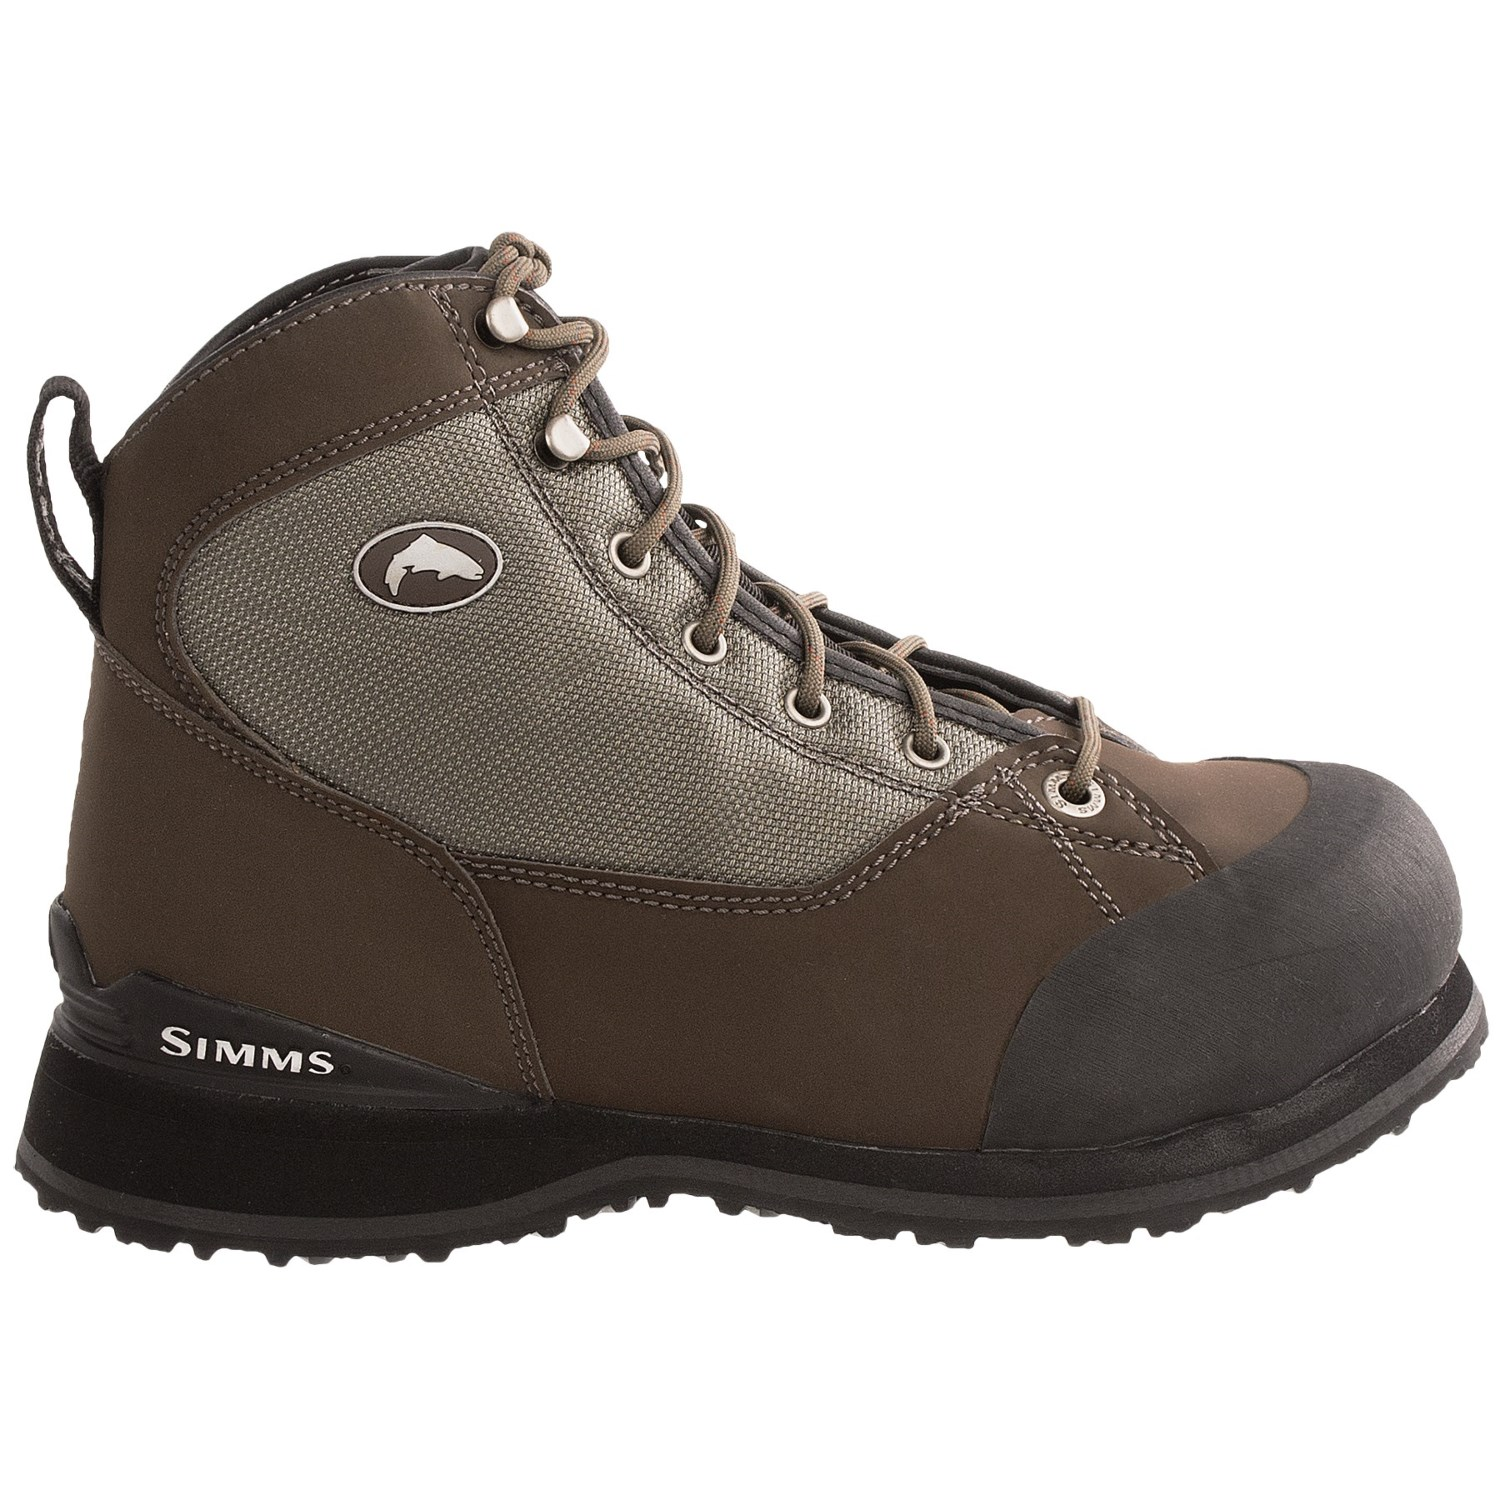 Simms Headwaters Wading Boots For Men 7031y Save 26